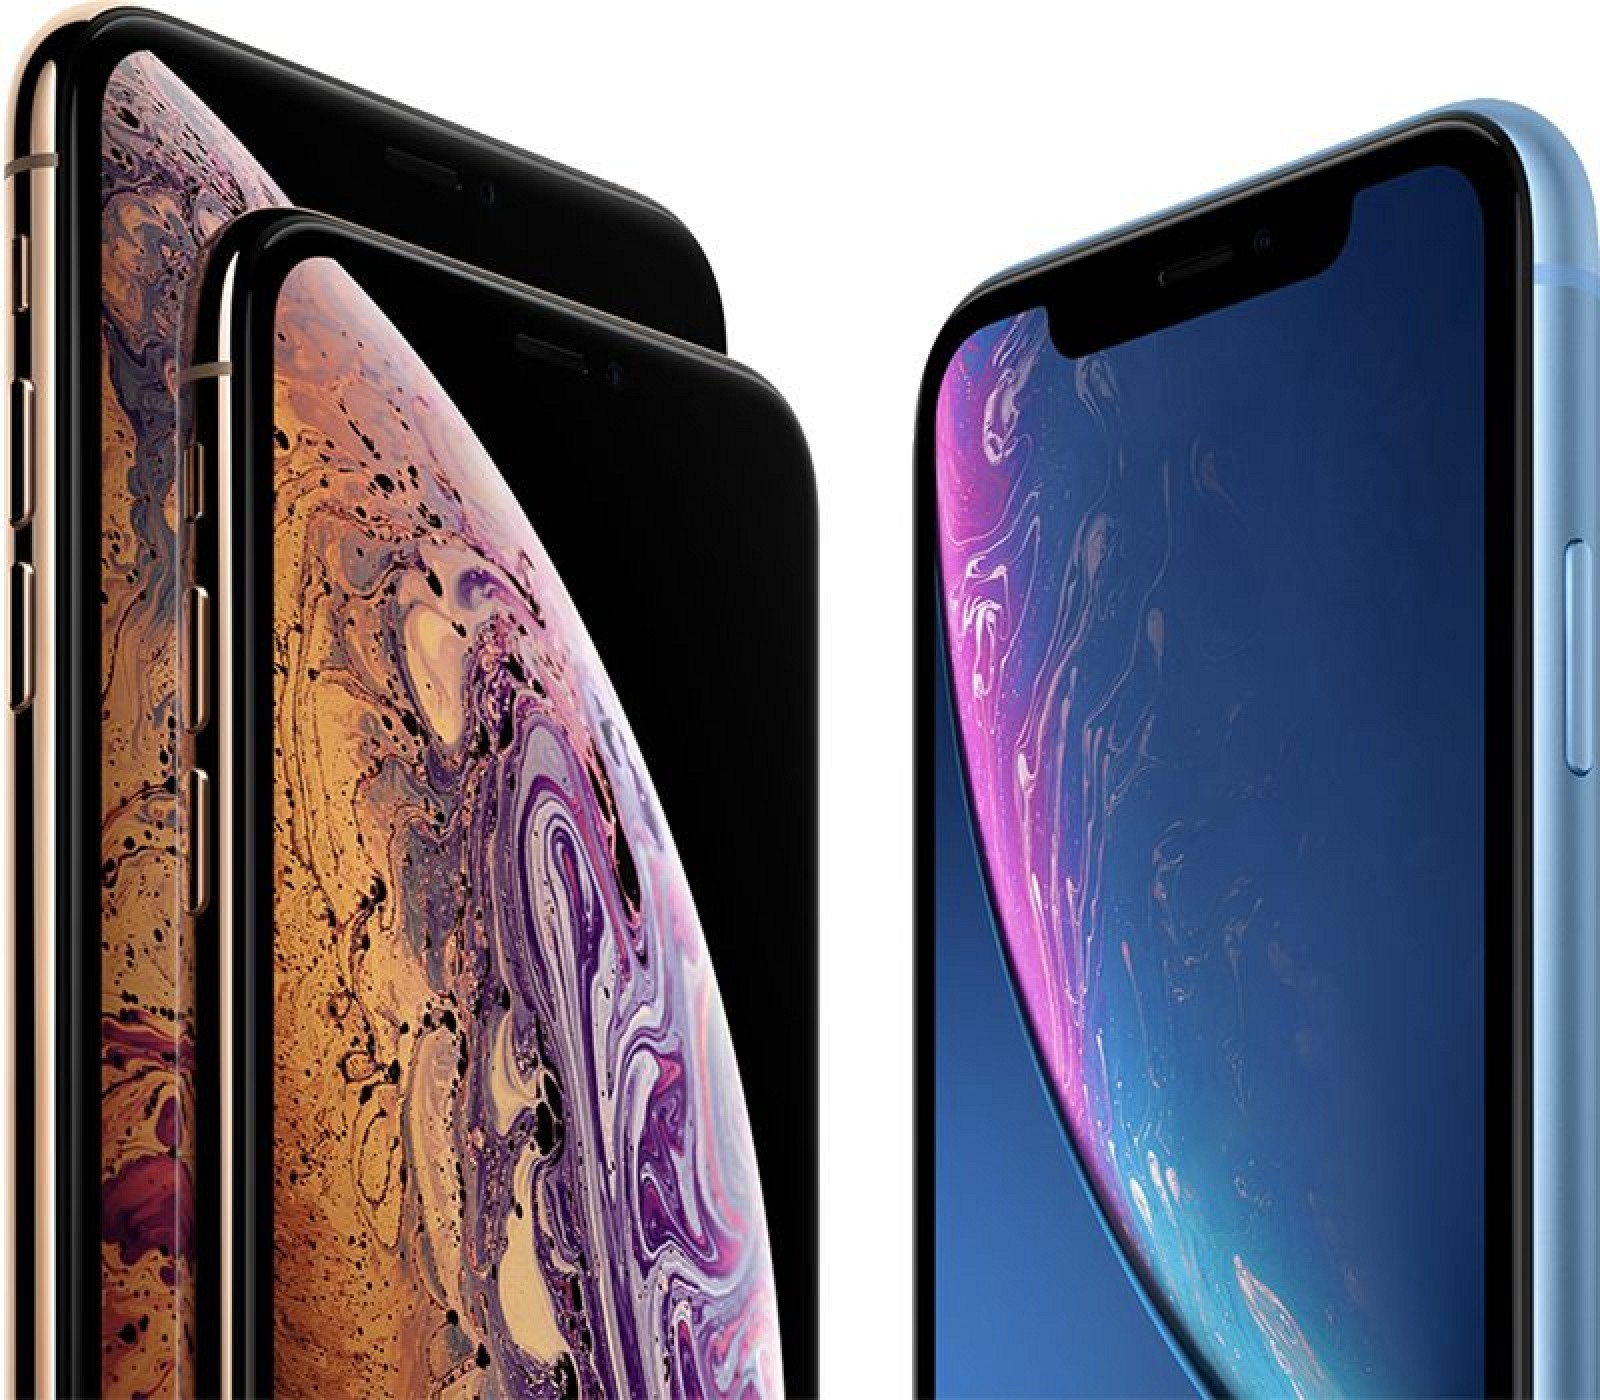 Strategy Analytics: Apple Shipped an Estimated 2.5 Million Fewer iPhones in China in 2018 than in 2017